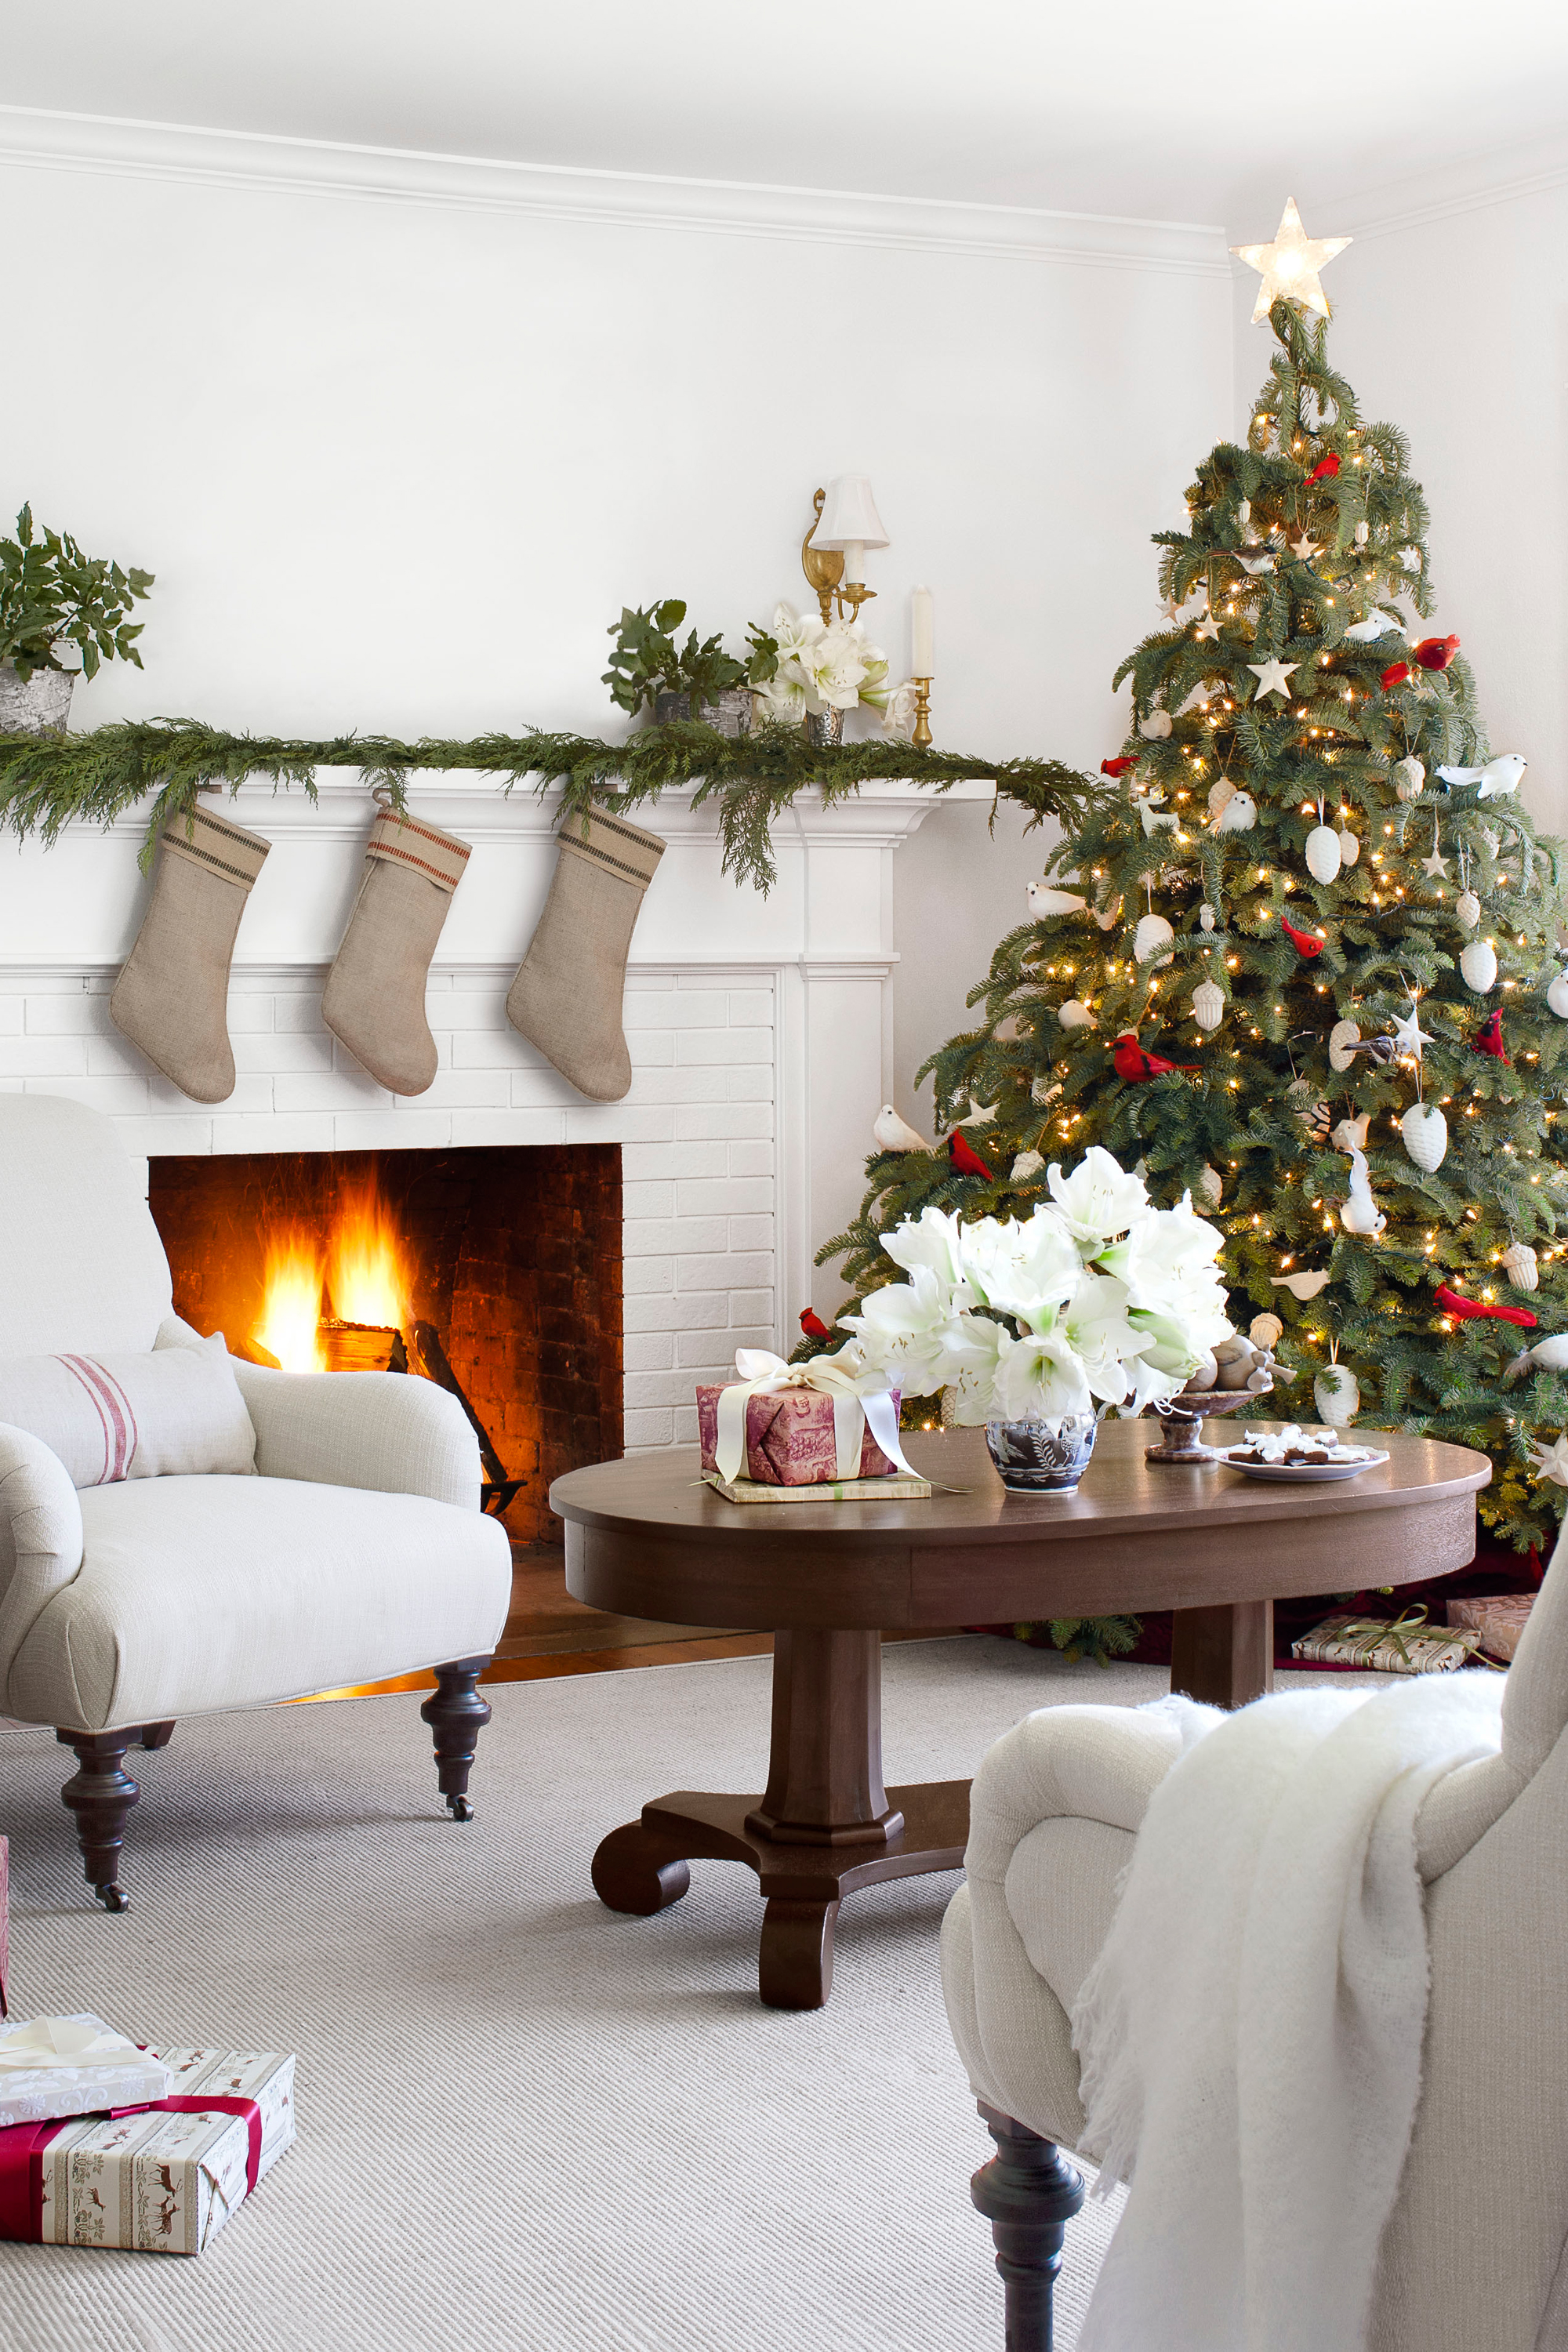 Living Room Christmas Decorating Ideas 100 country christmas decorations - holiday decorating ideas 2017